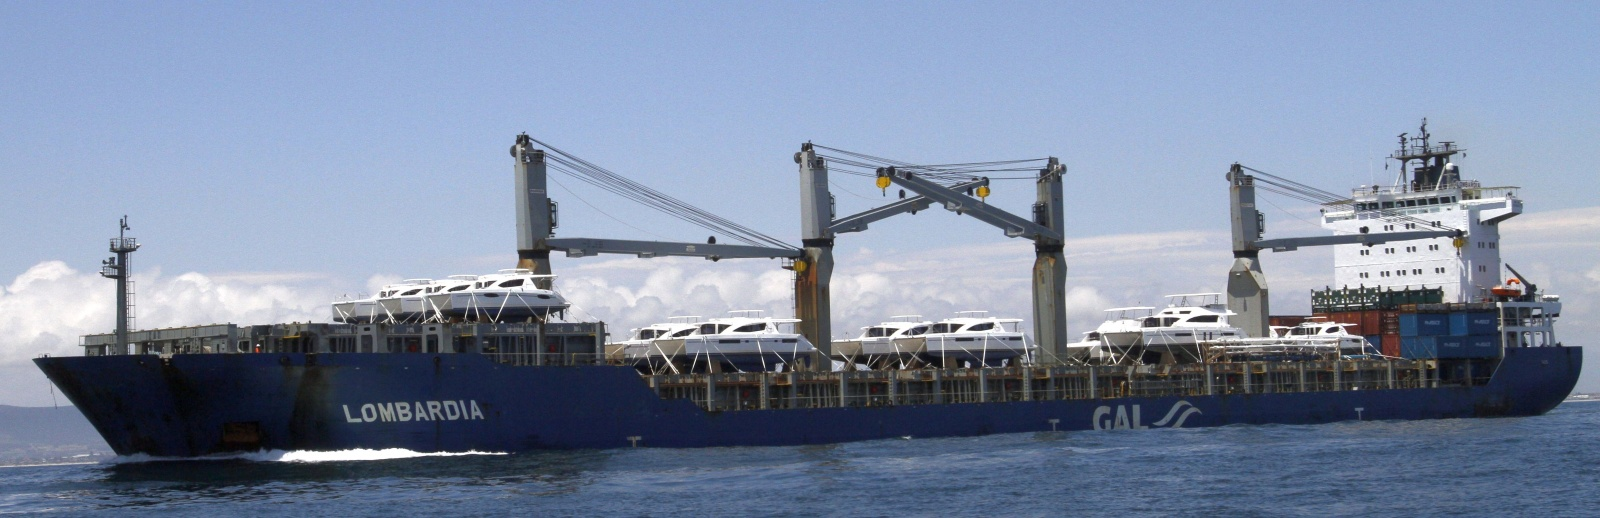 Click image for larger version  Name:December Caribbean-West Palm Ship.jpg Views:202 Size:269.2 KB ID:74463